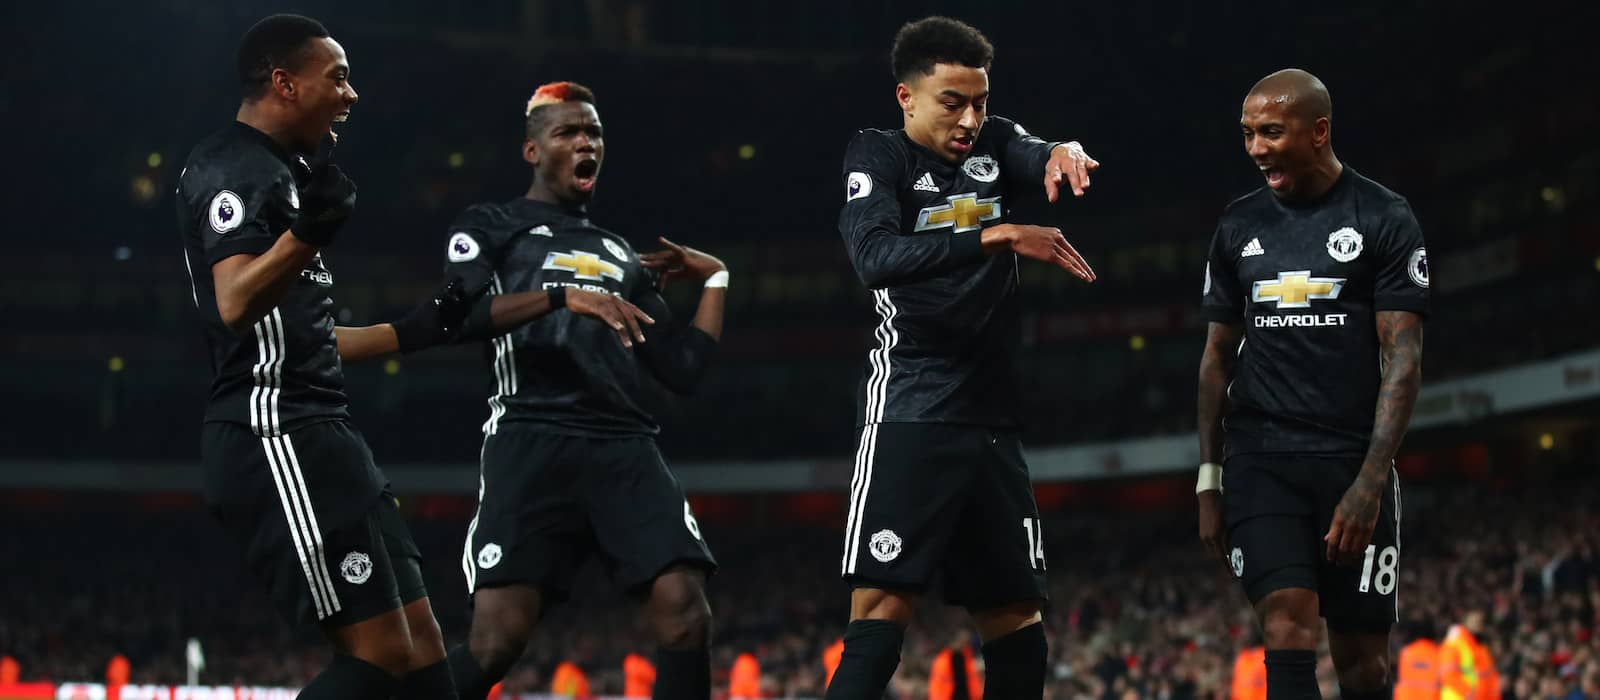 Danny Murphy: Manchester United's Jesse Lingard is a very intelligent player